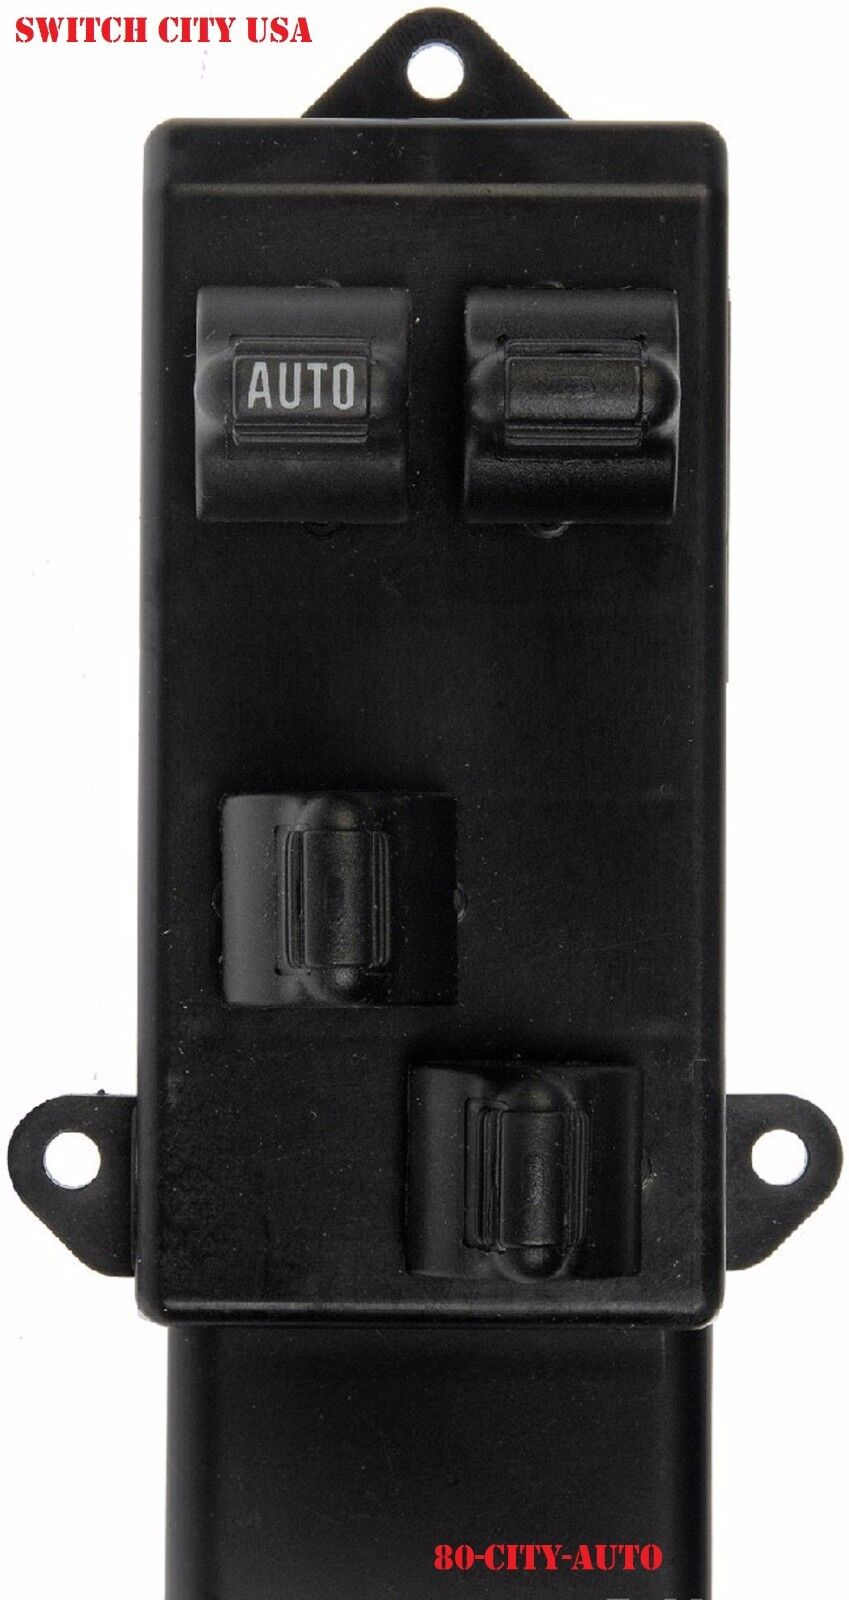 Used Dodge Caravan Switches And Controls For Sale New 2012 Chrysler Town Country 36 Fuse Box Voyager Driver Master Left Power Window Switch